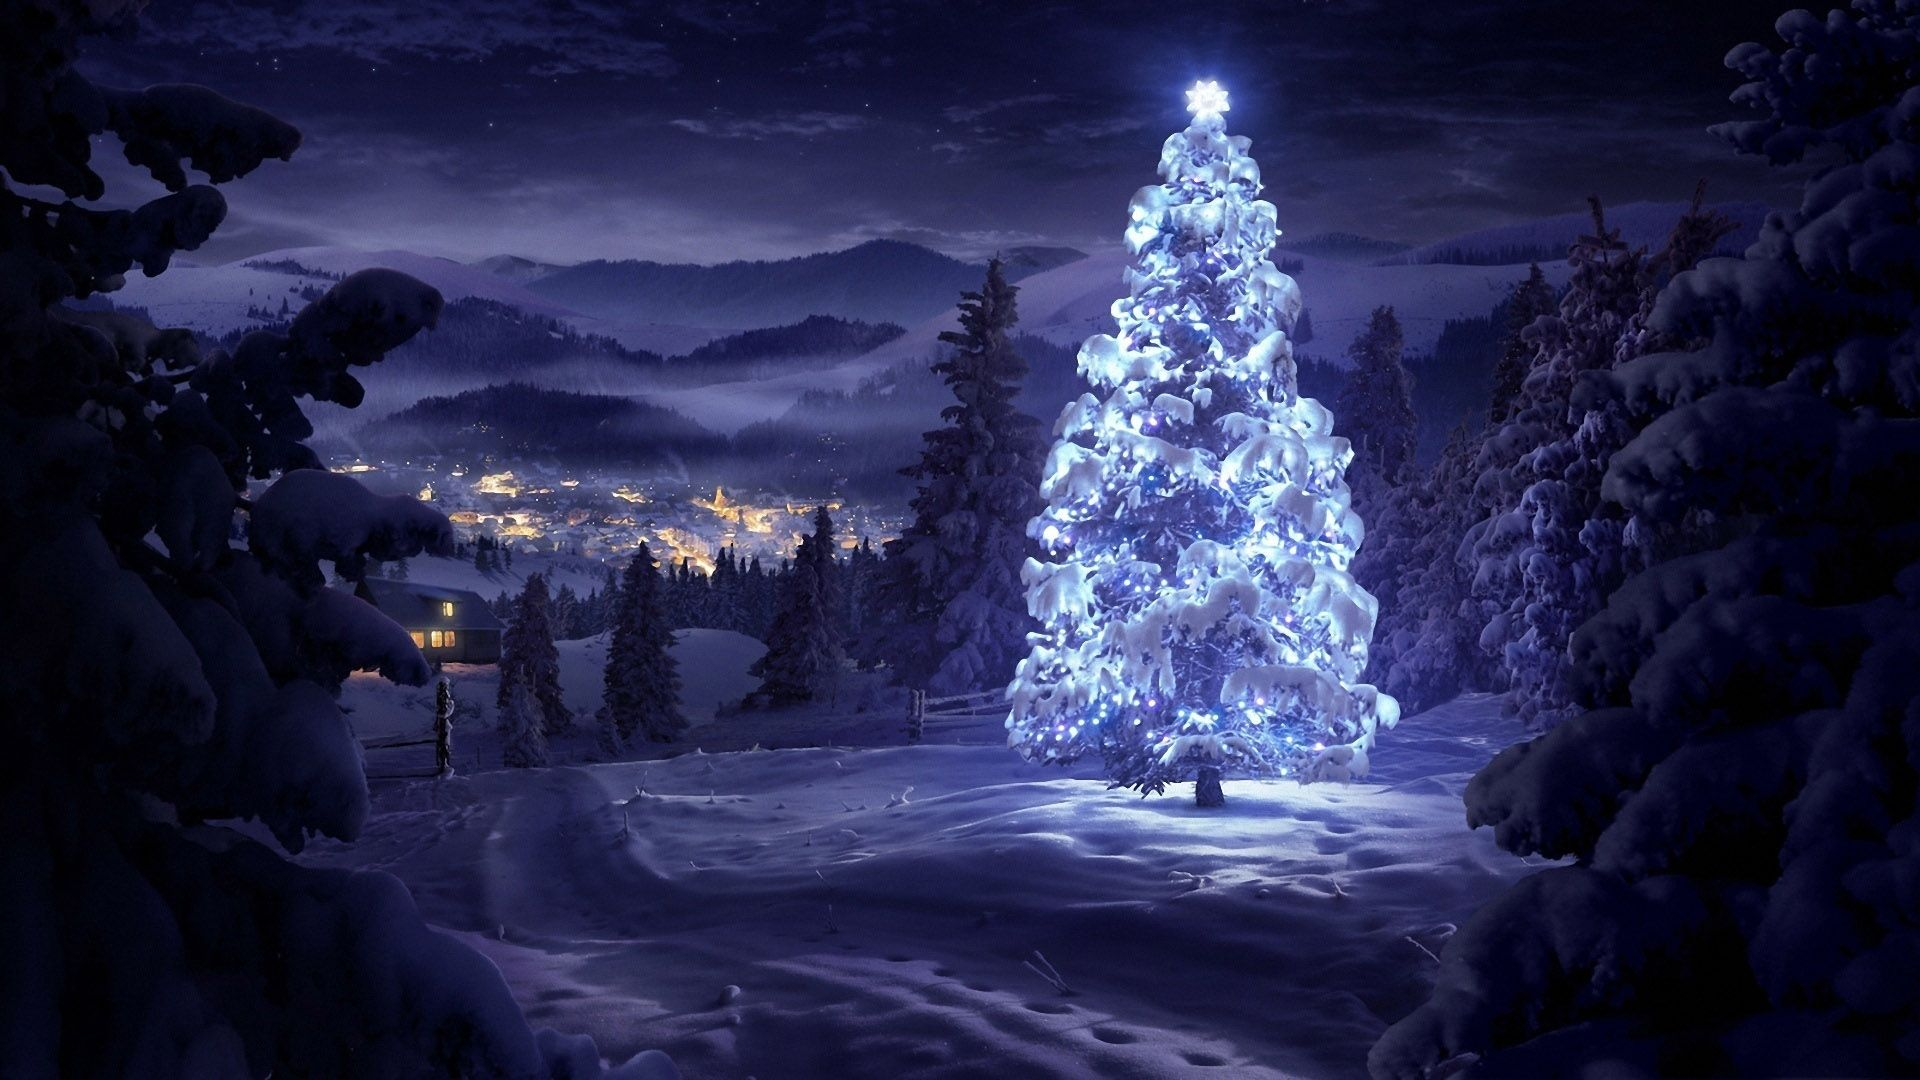 White Christmas Tree In The Nature Hd Snowy Wallpaper Beautiful